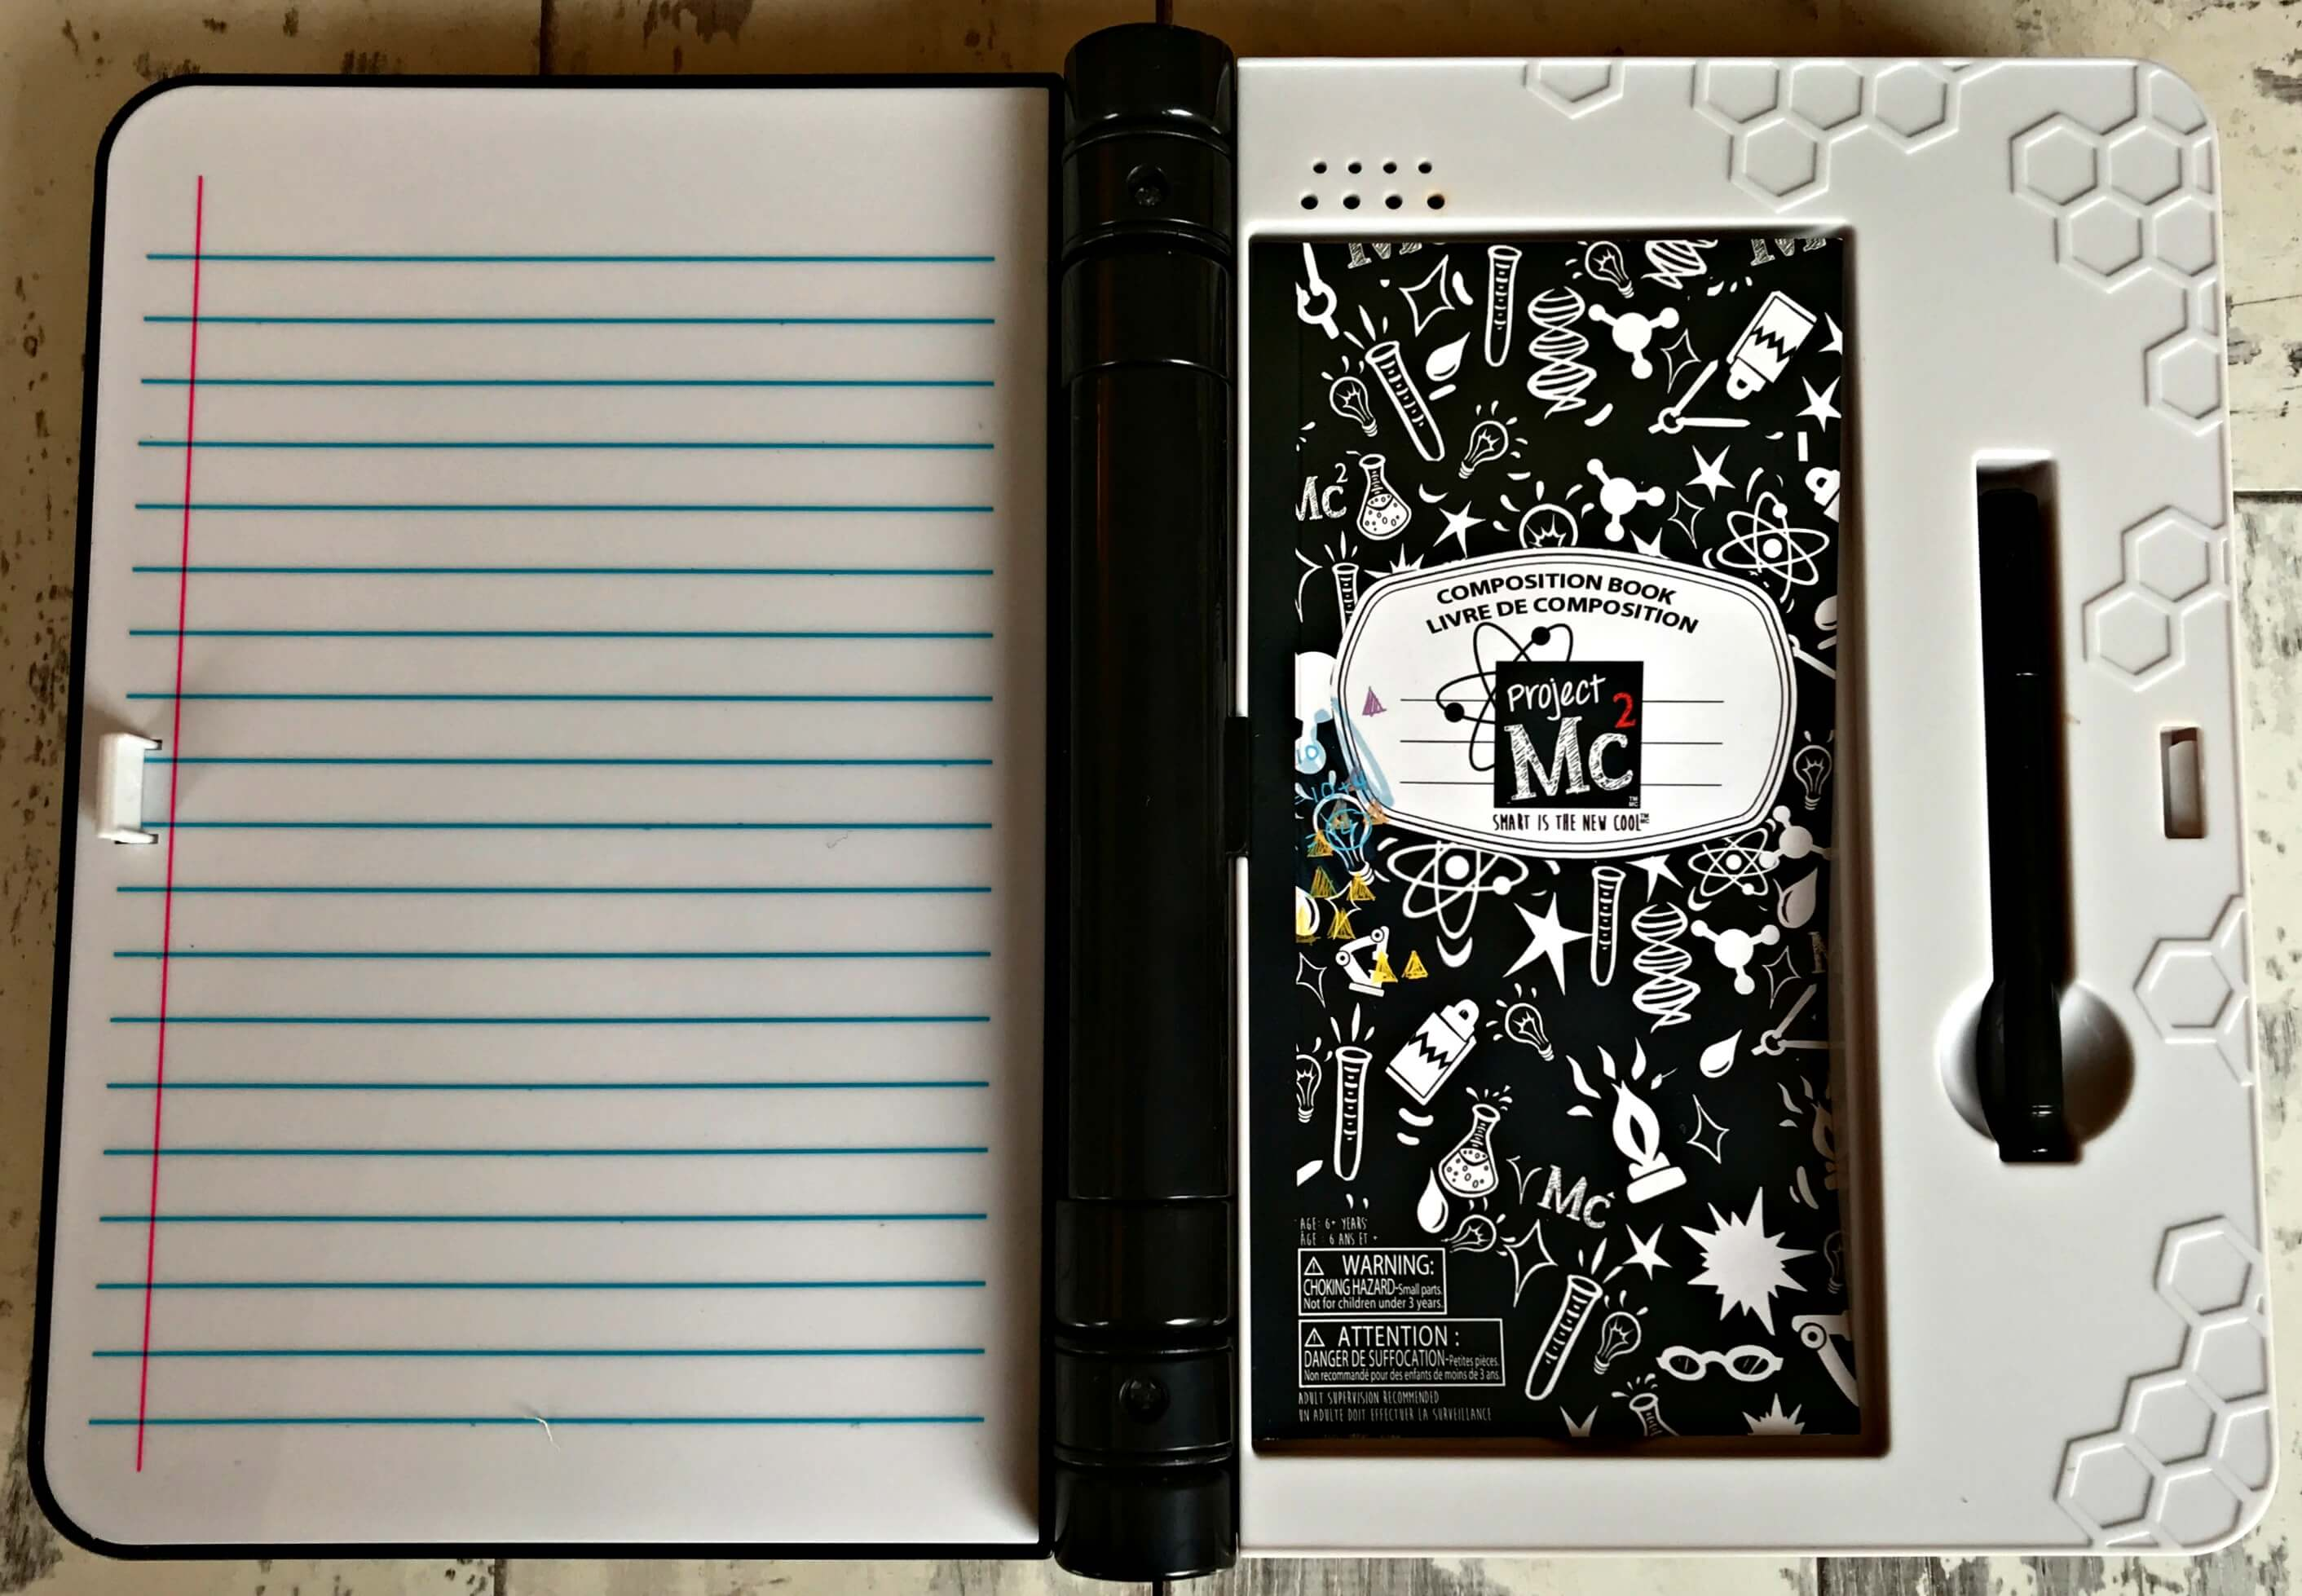 Inside the Project Mc2 A.D.I.S.N. Electronic Journal